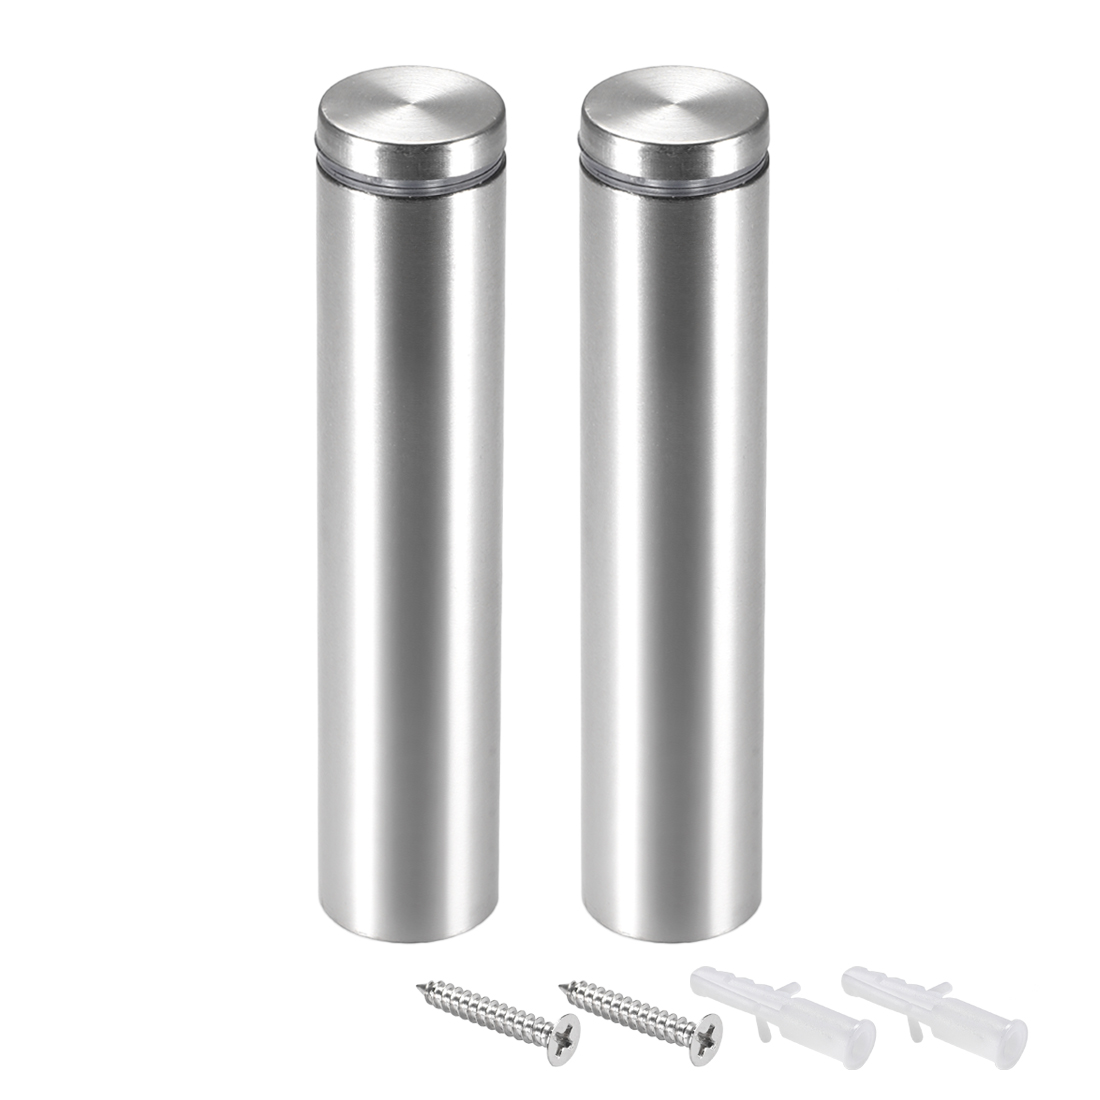 Glass Standoff Mount Stainless Steel Wall Standoff 25mm Dia 122mm Length 2Pcs